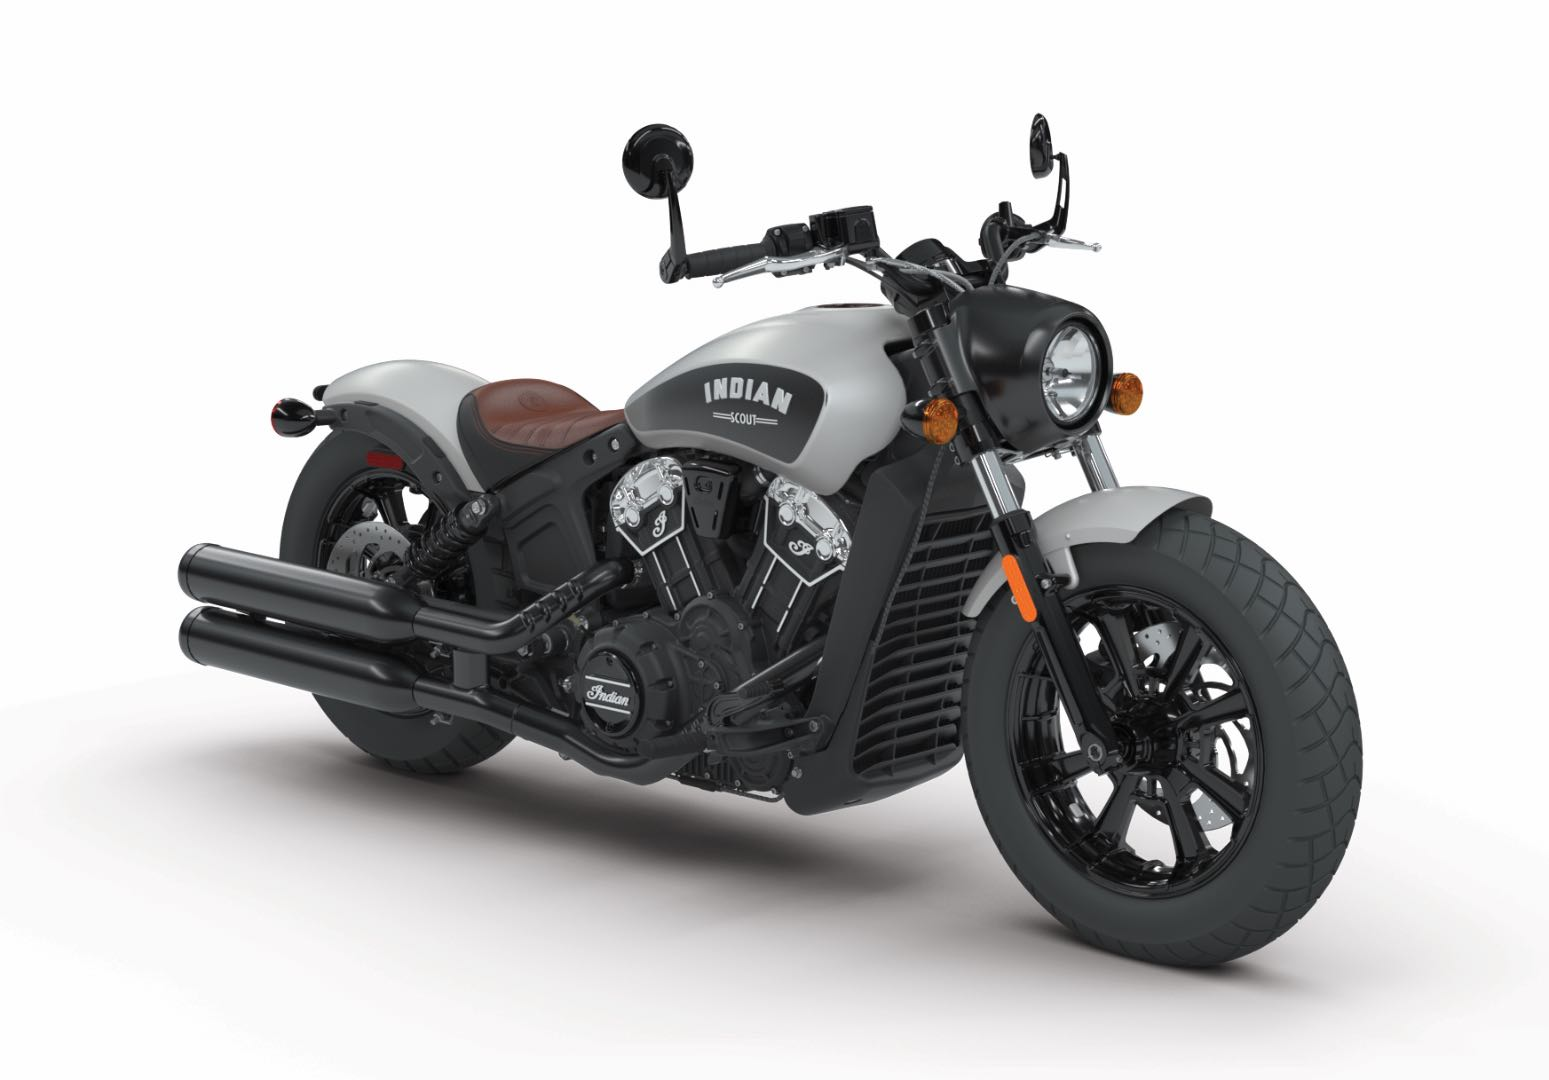 2018 Indian Scout Bobber Unveiled | 8 Fast Facts